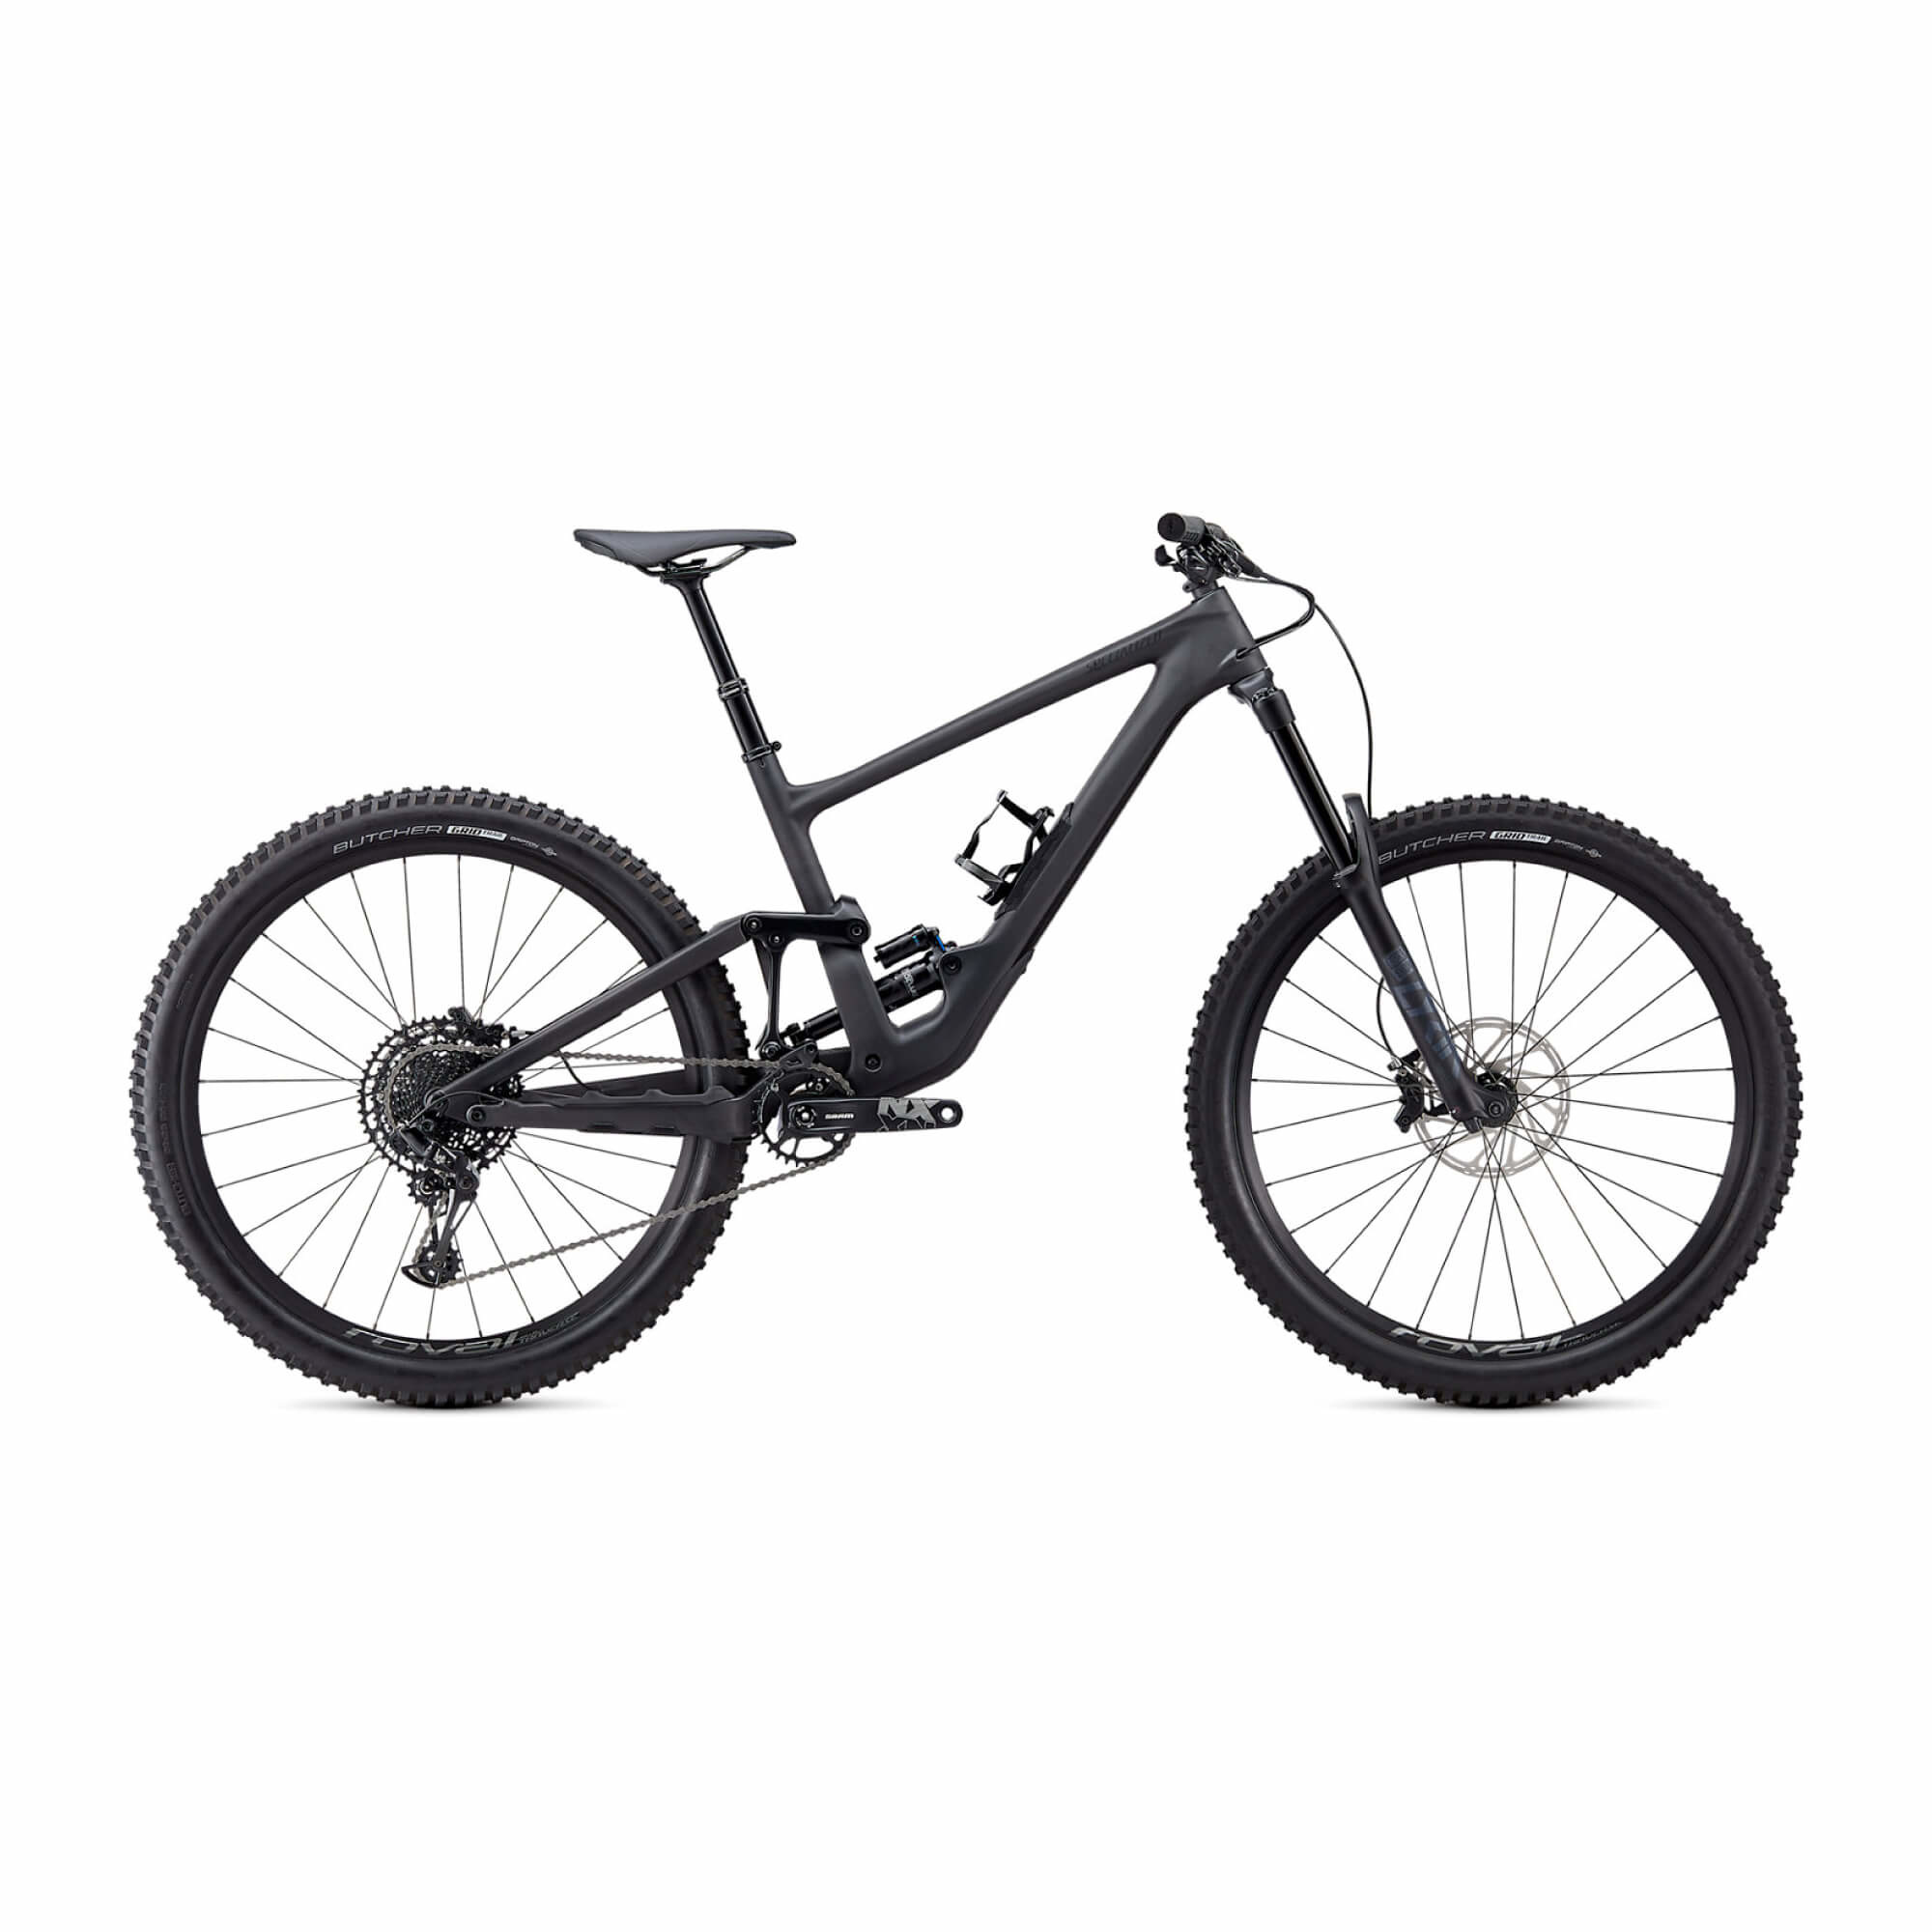 Enduro Comp Carbon 29 2020-1